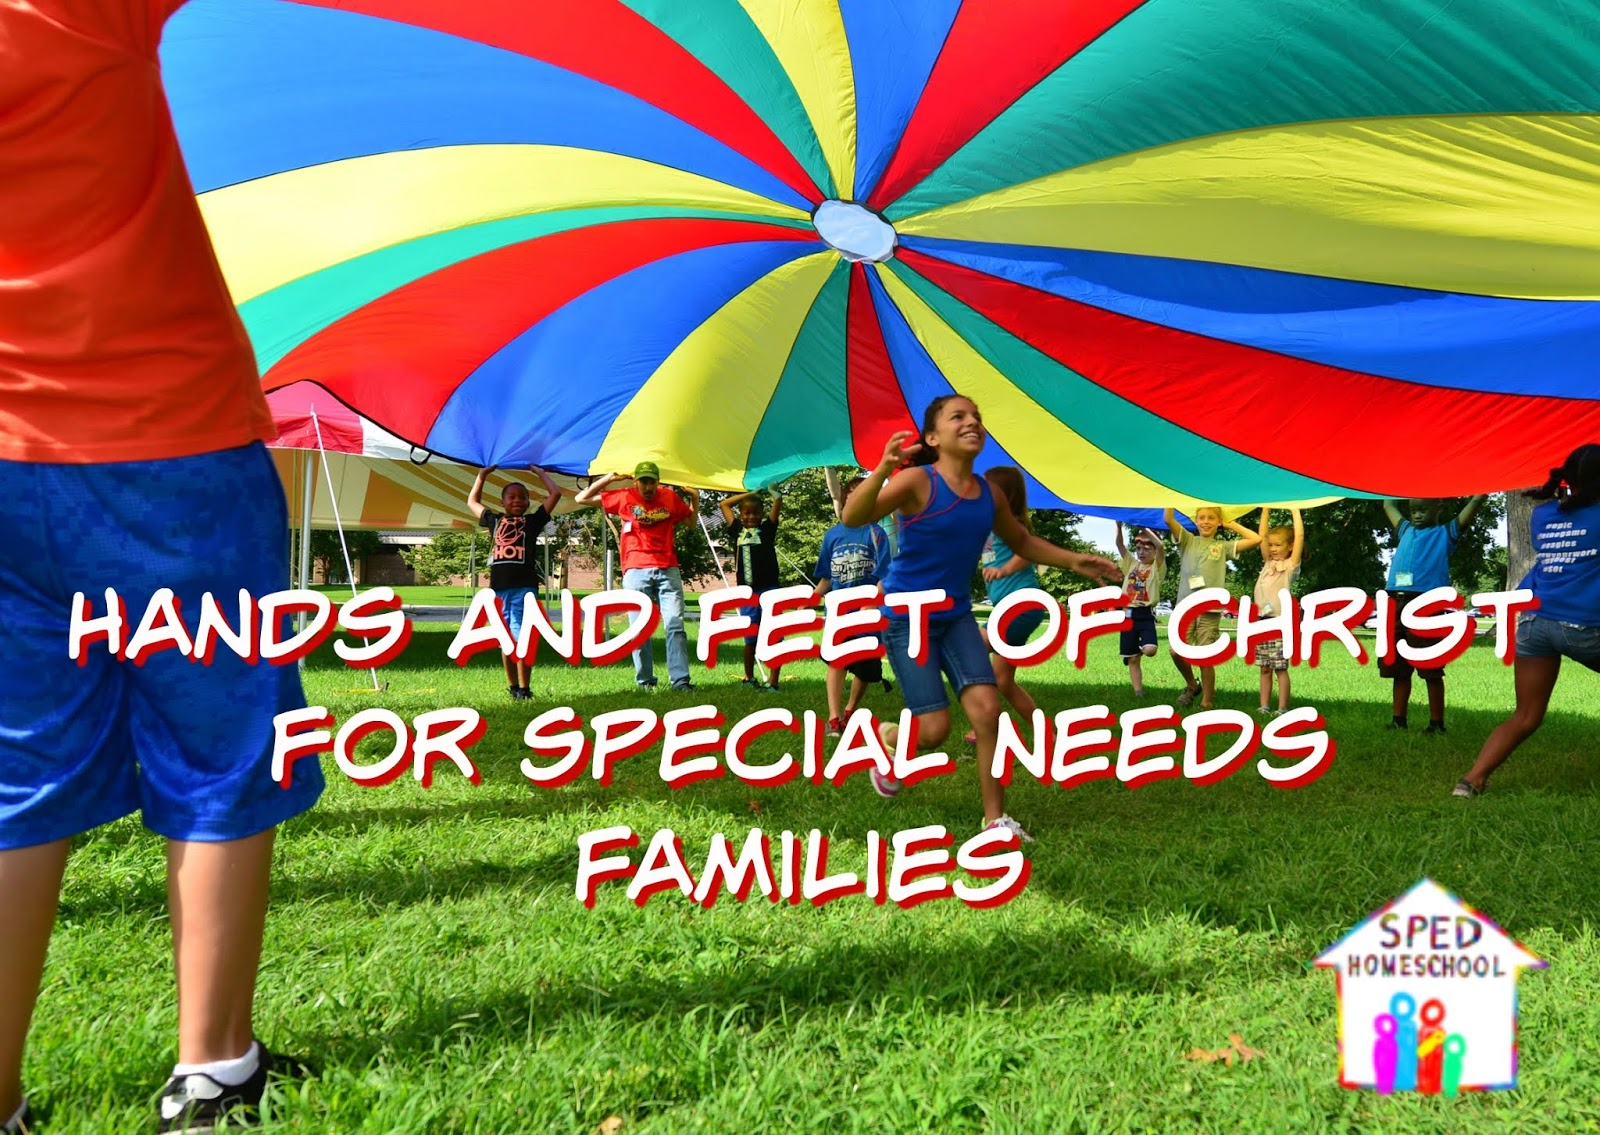 Hands and Feet of Christ for Special Needs Families